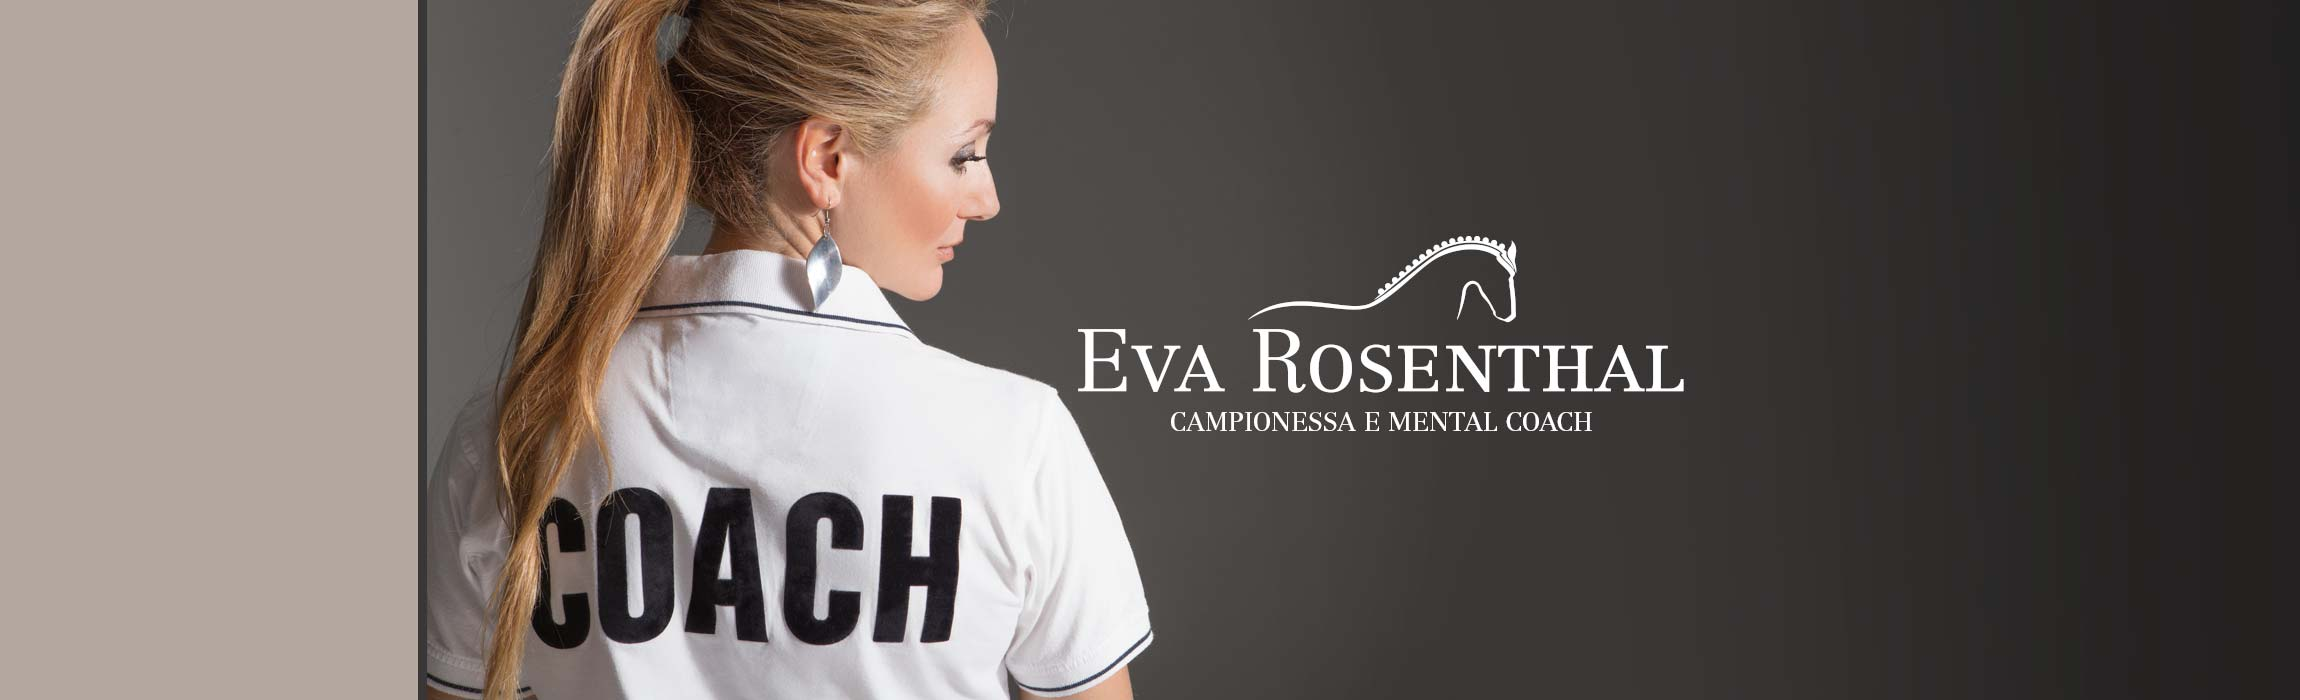 Menatl-coach-header-new